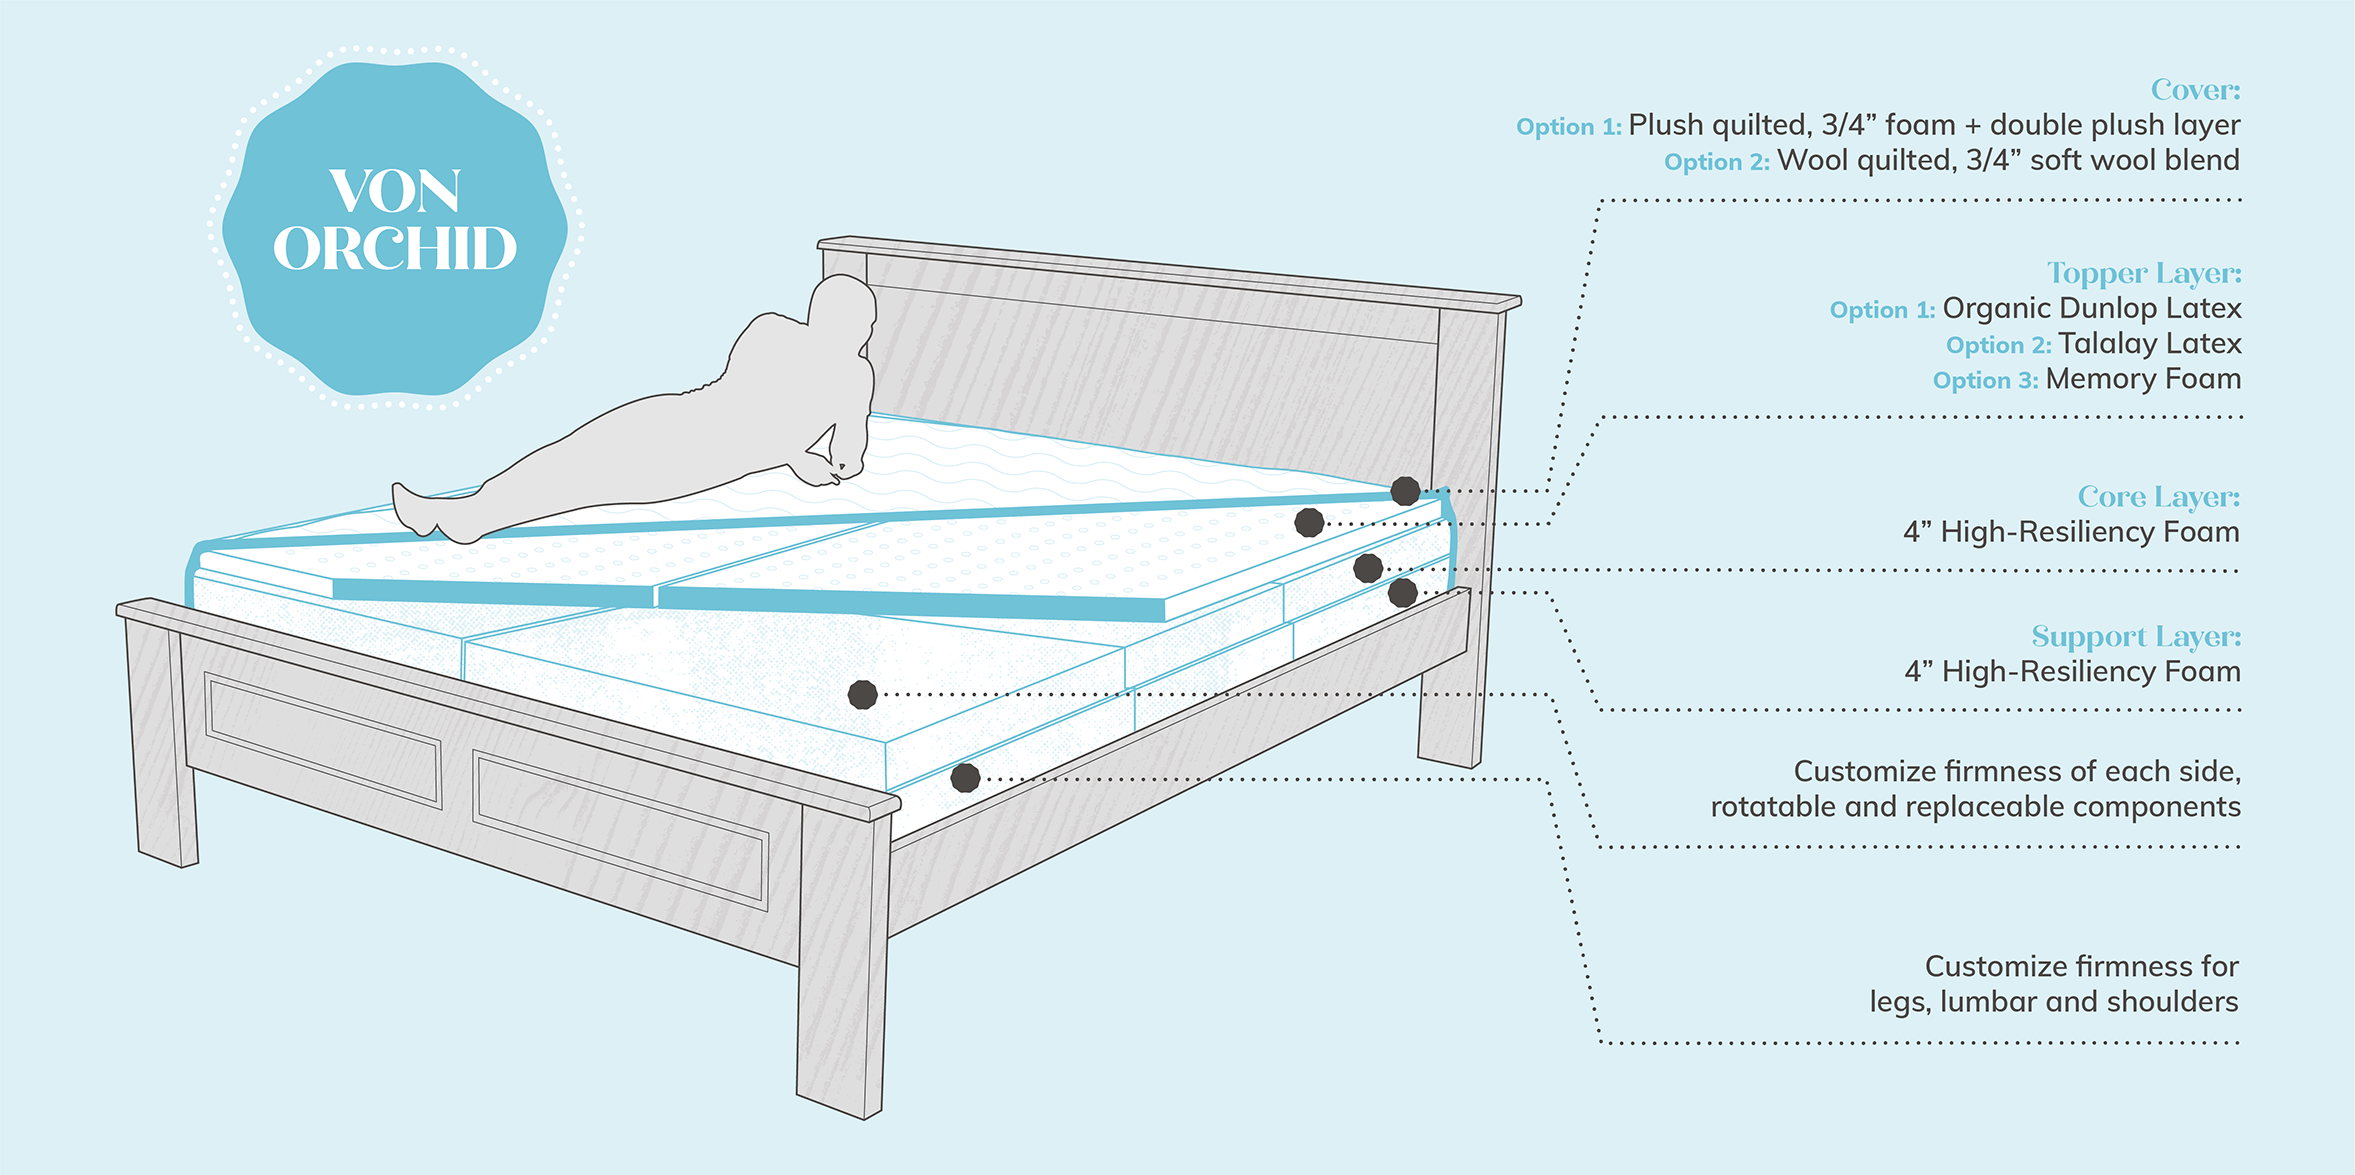 Hybrid Mattress Diagram - Von Orchid